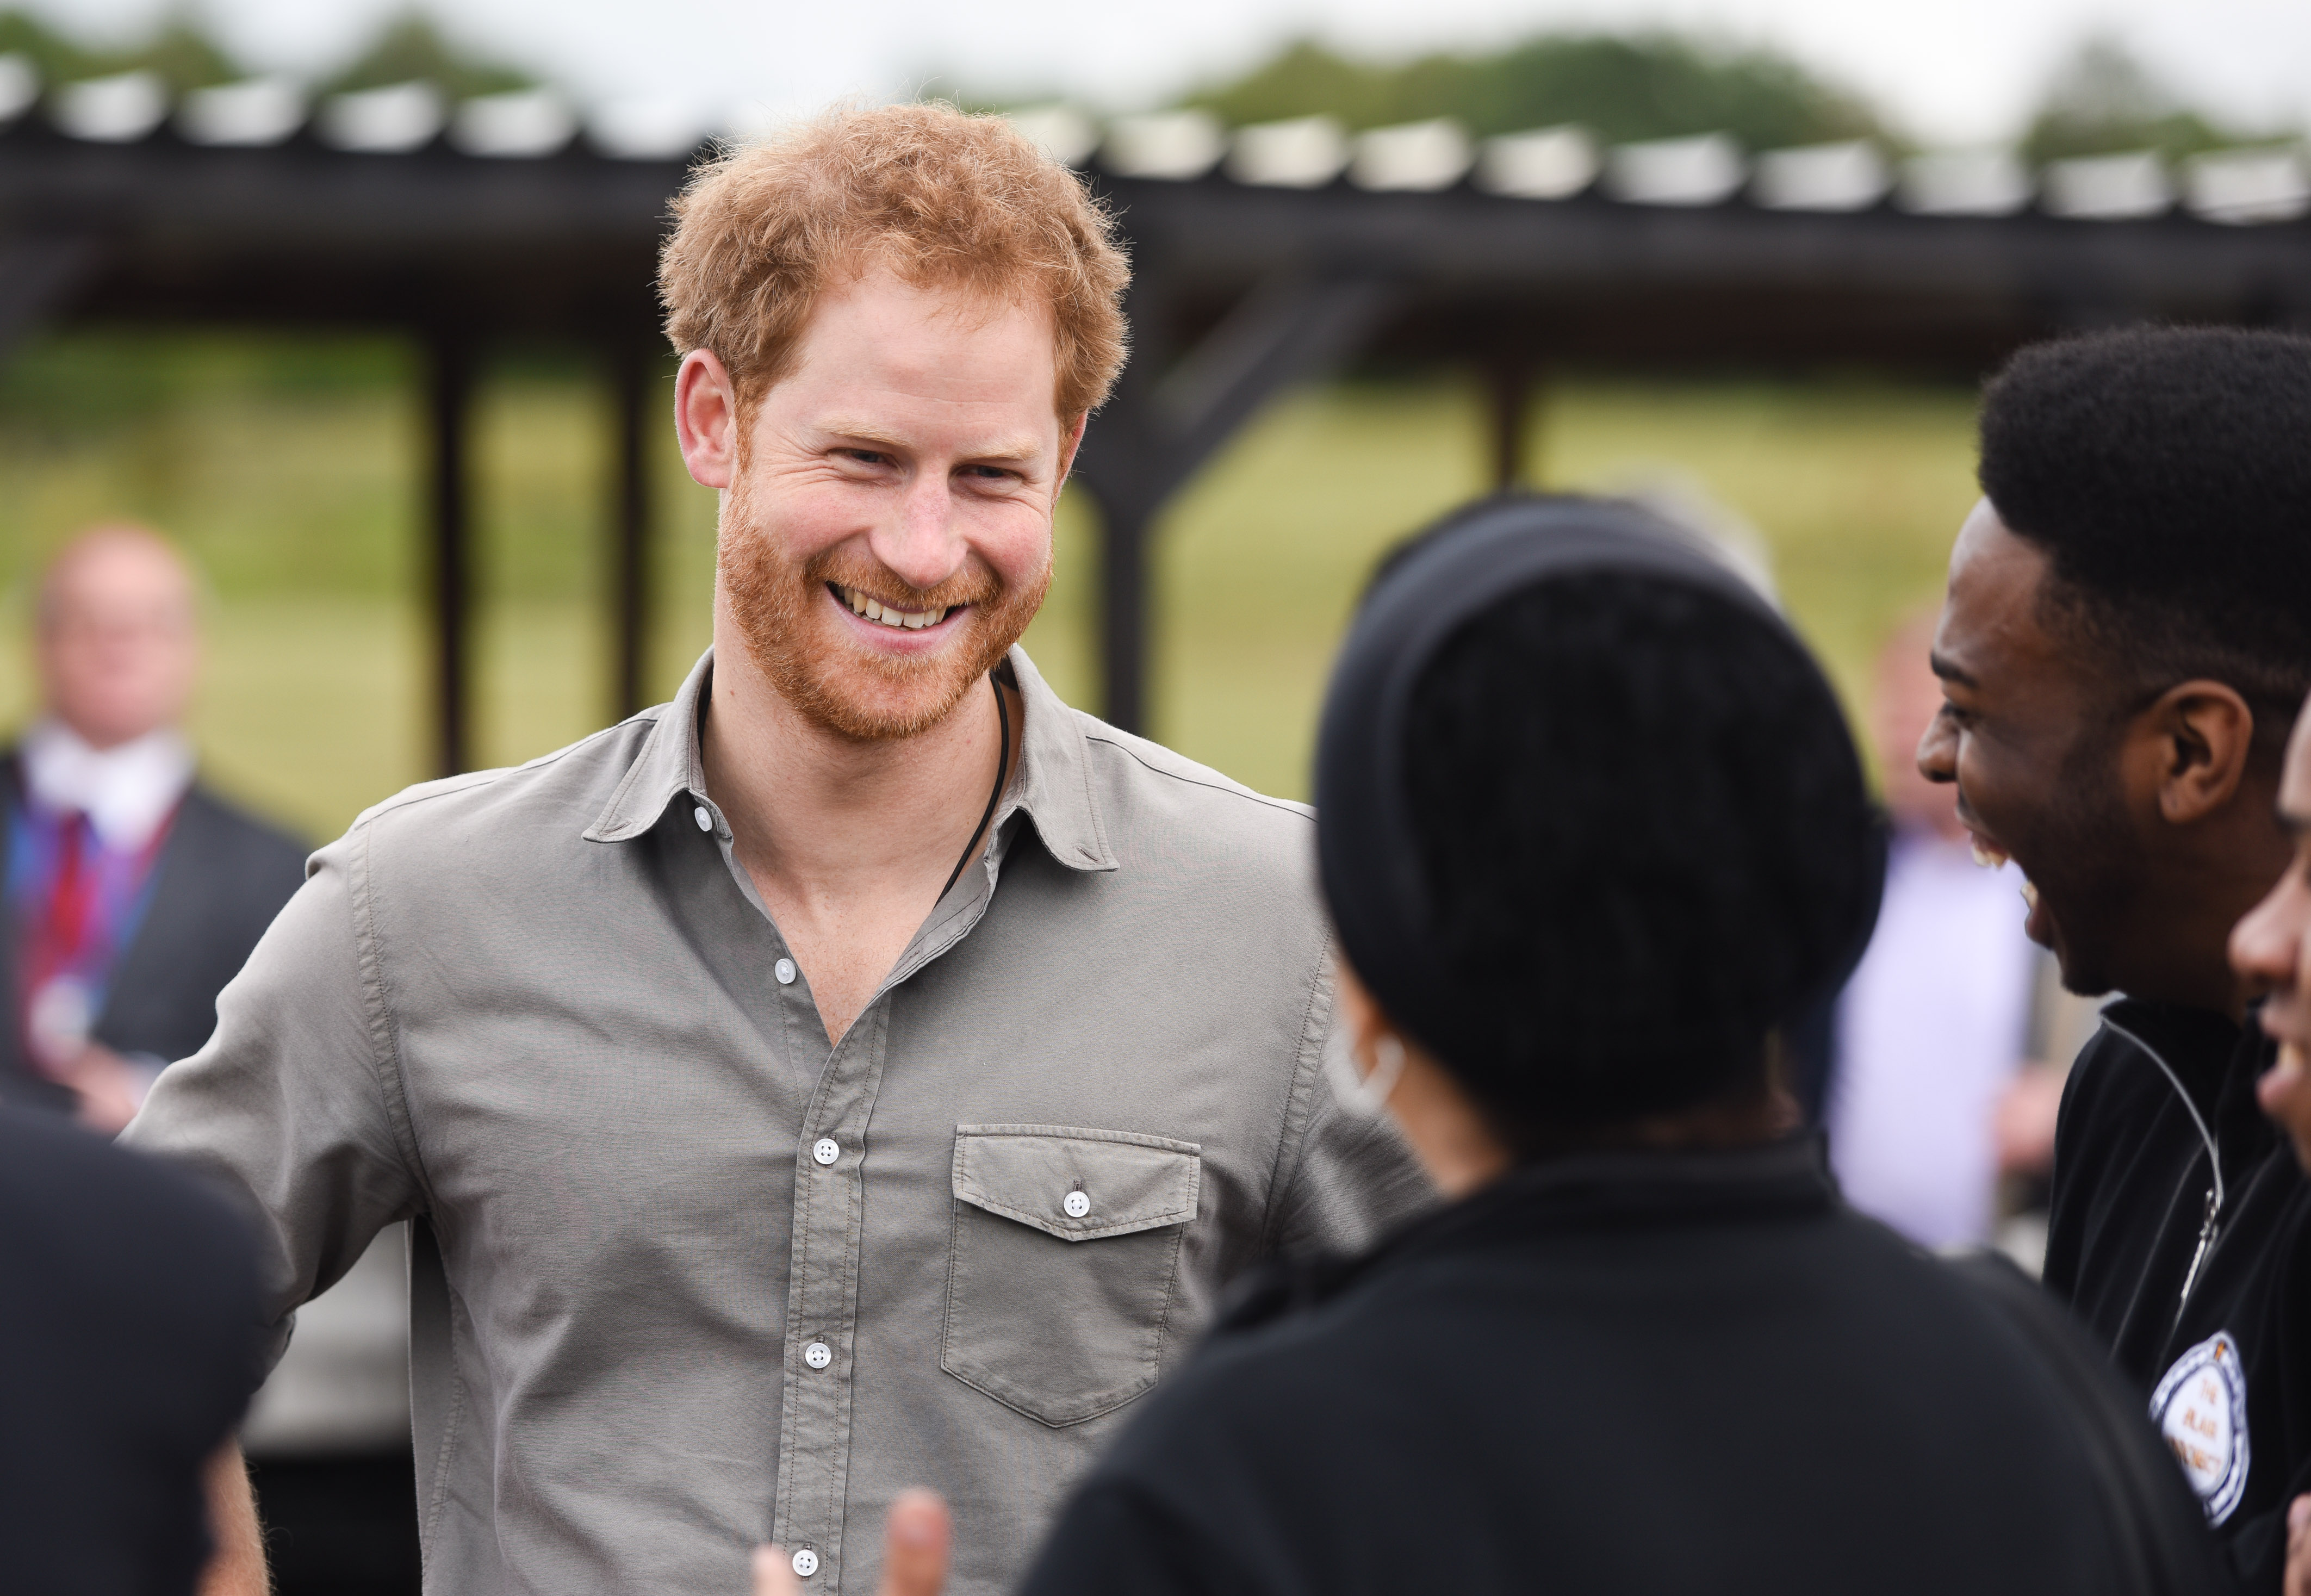 Prince Harry North West visit